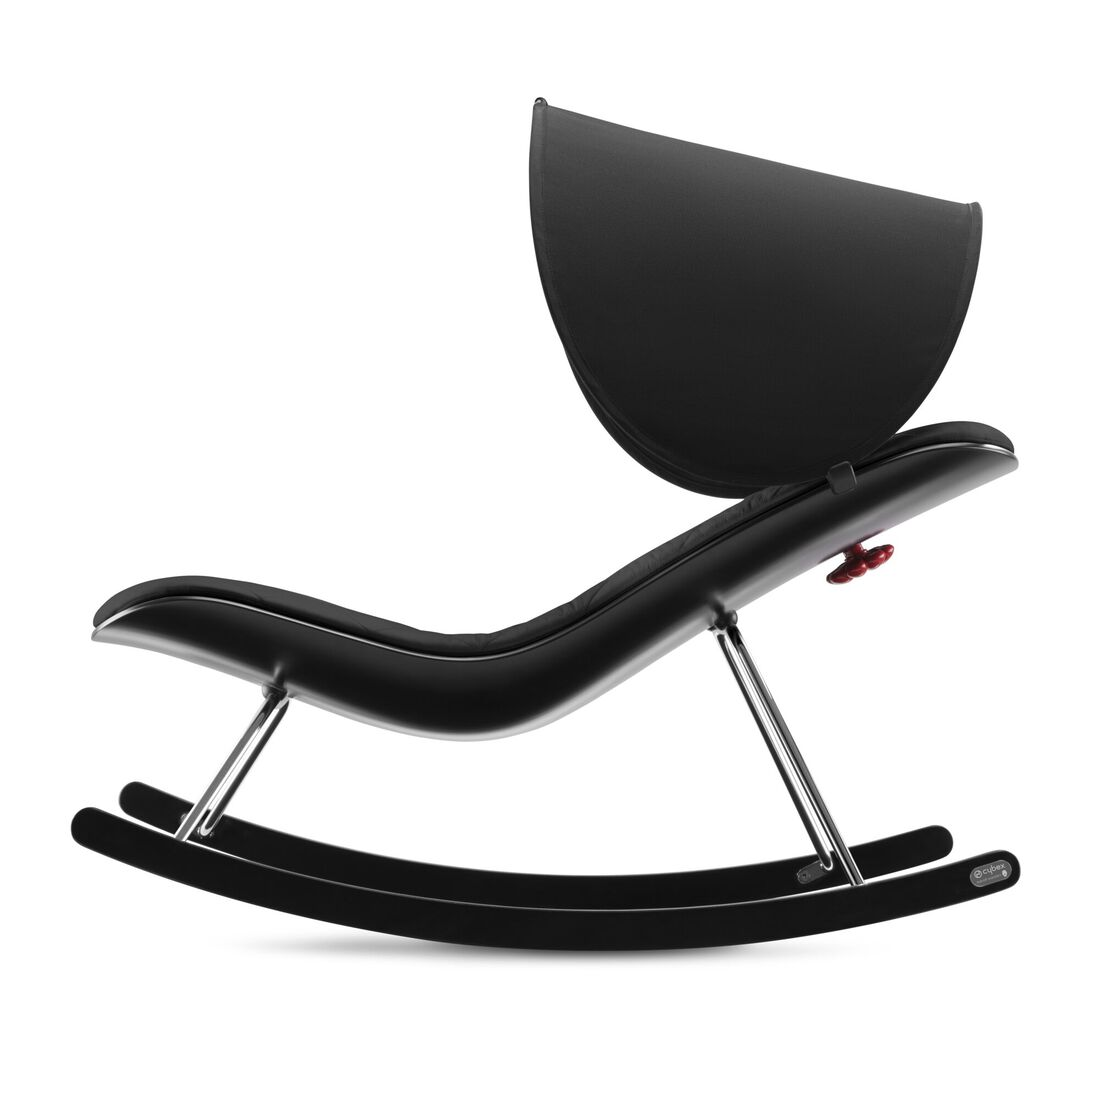 CYBEX Wanders Canopy - Black in Black large image number 2